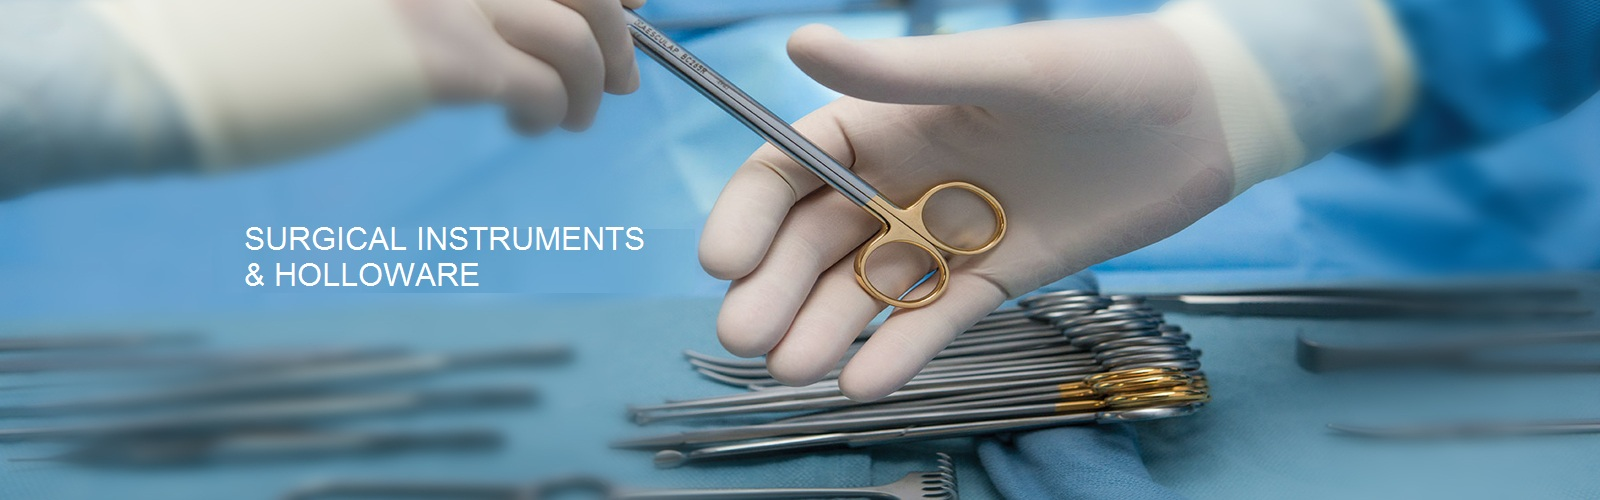 SURGICAL INSTRUMENTS & HOLLOWARE